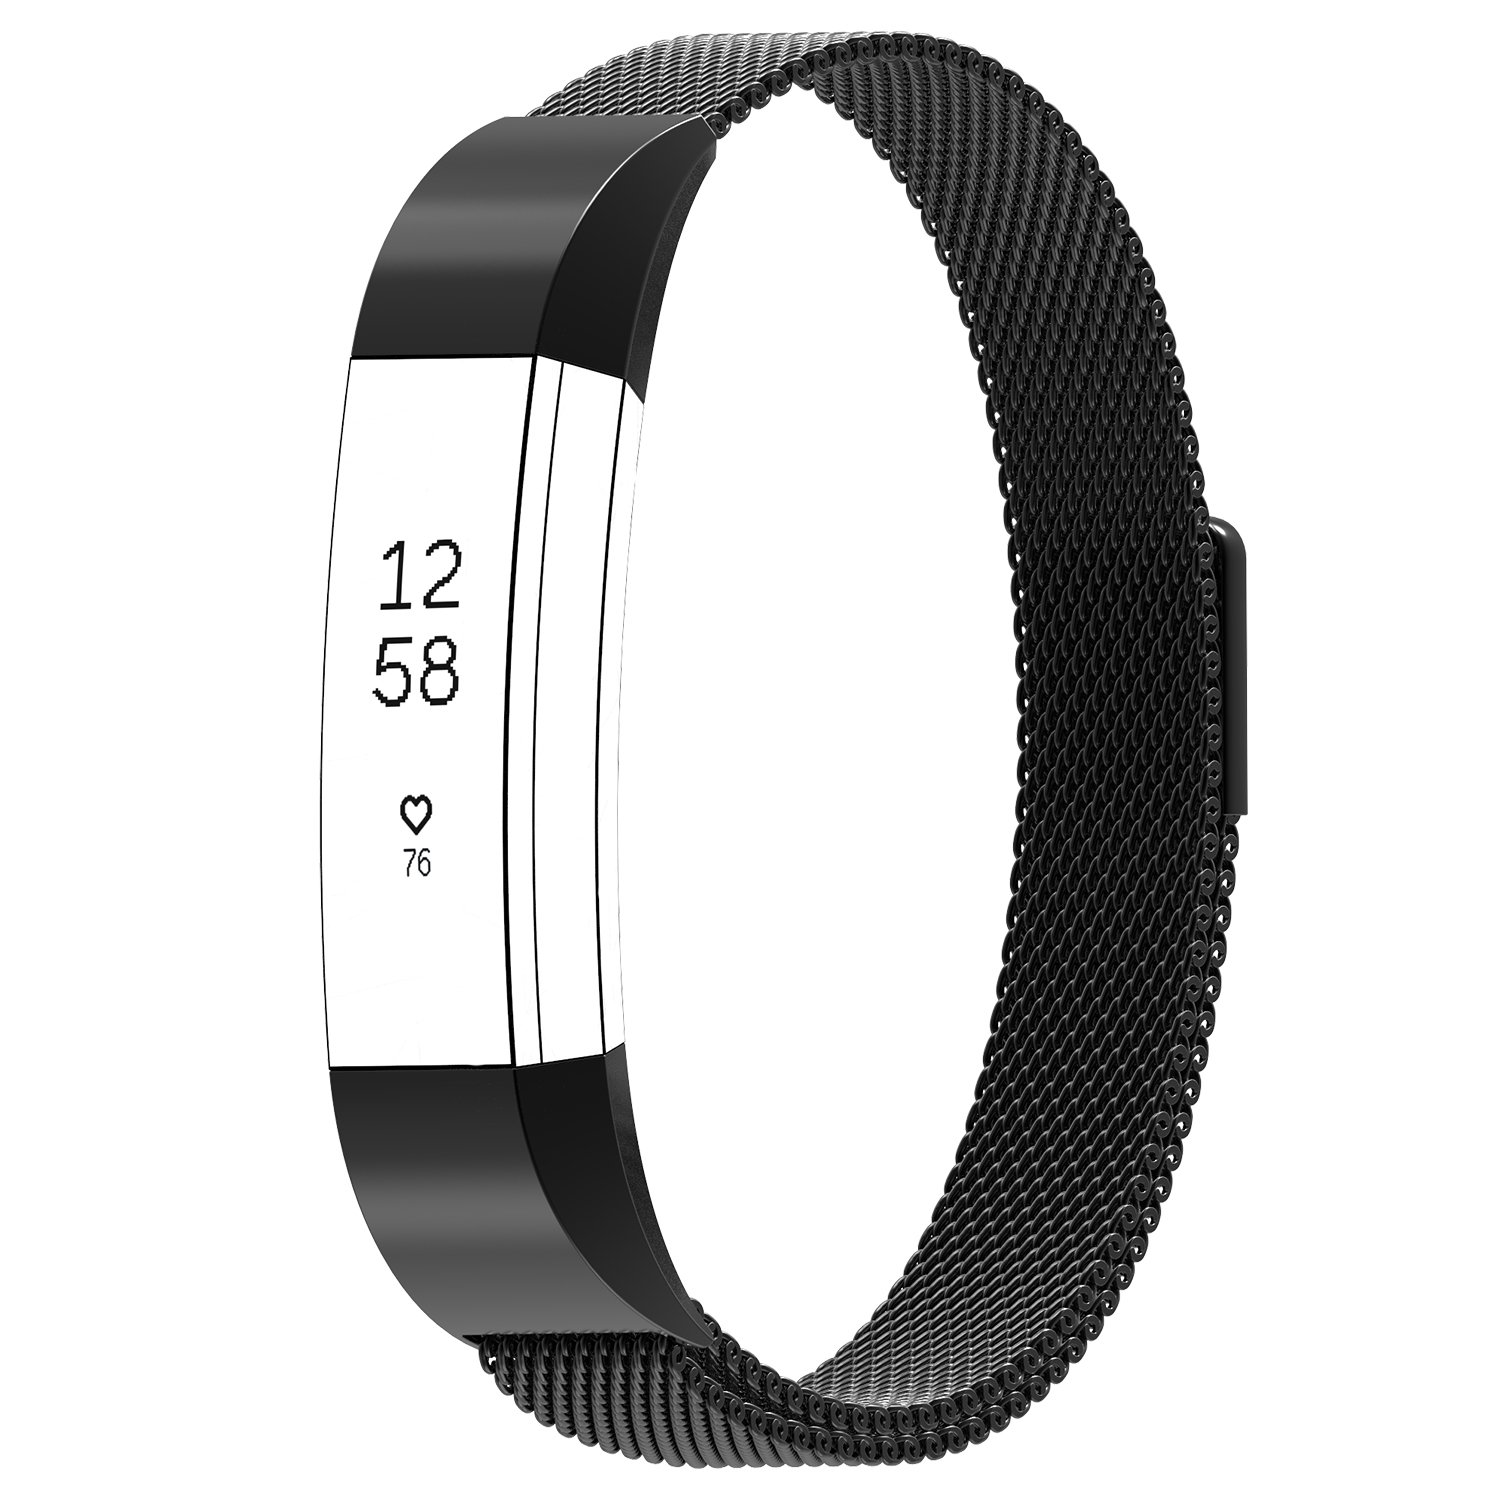 Austrake For Fitbit Alta HR Bands Metal and Fitbit Alta, Stainless Steel Replacement Milanese Band for Fitbit Alta Small Large for Men,Black